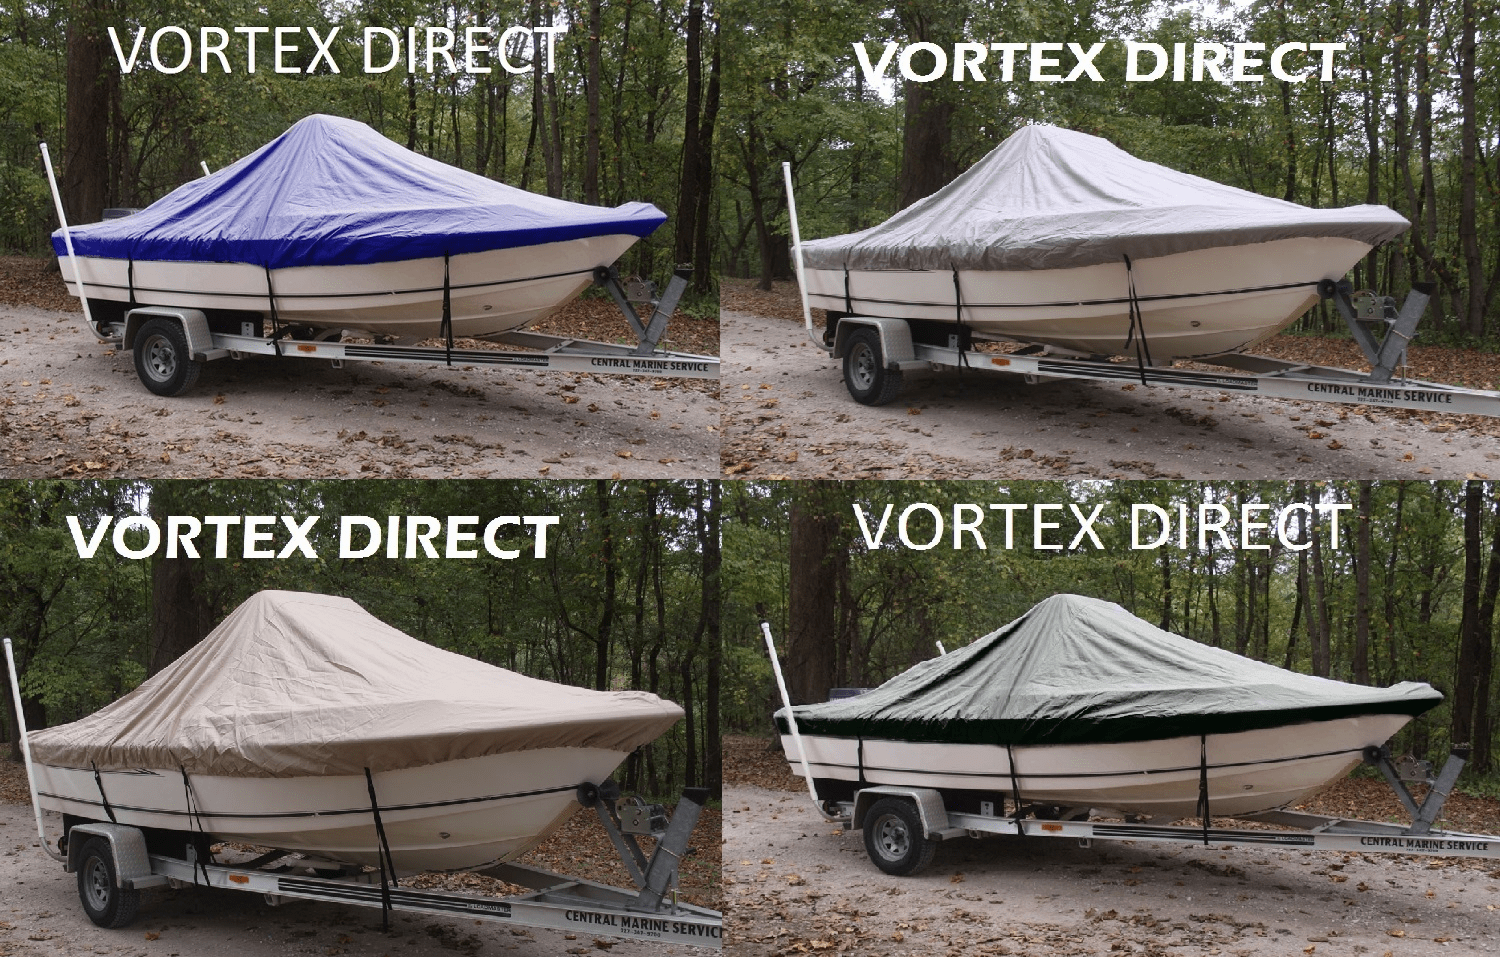 "VORTEX HEAVY DUTY CENTER CONSOLE BOAT COVER FOR 15'7"" - 16'6"" BOAT ( FAST SHIPPING - 1 TO 4 BUSINESS DAY DELIVERY )"